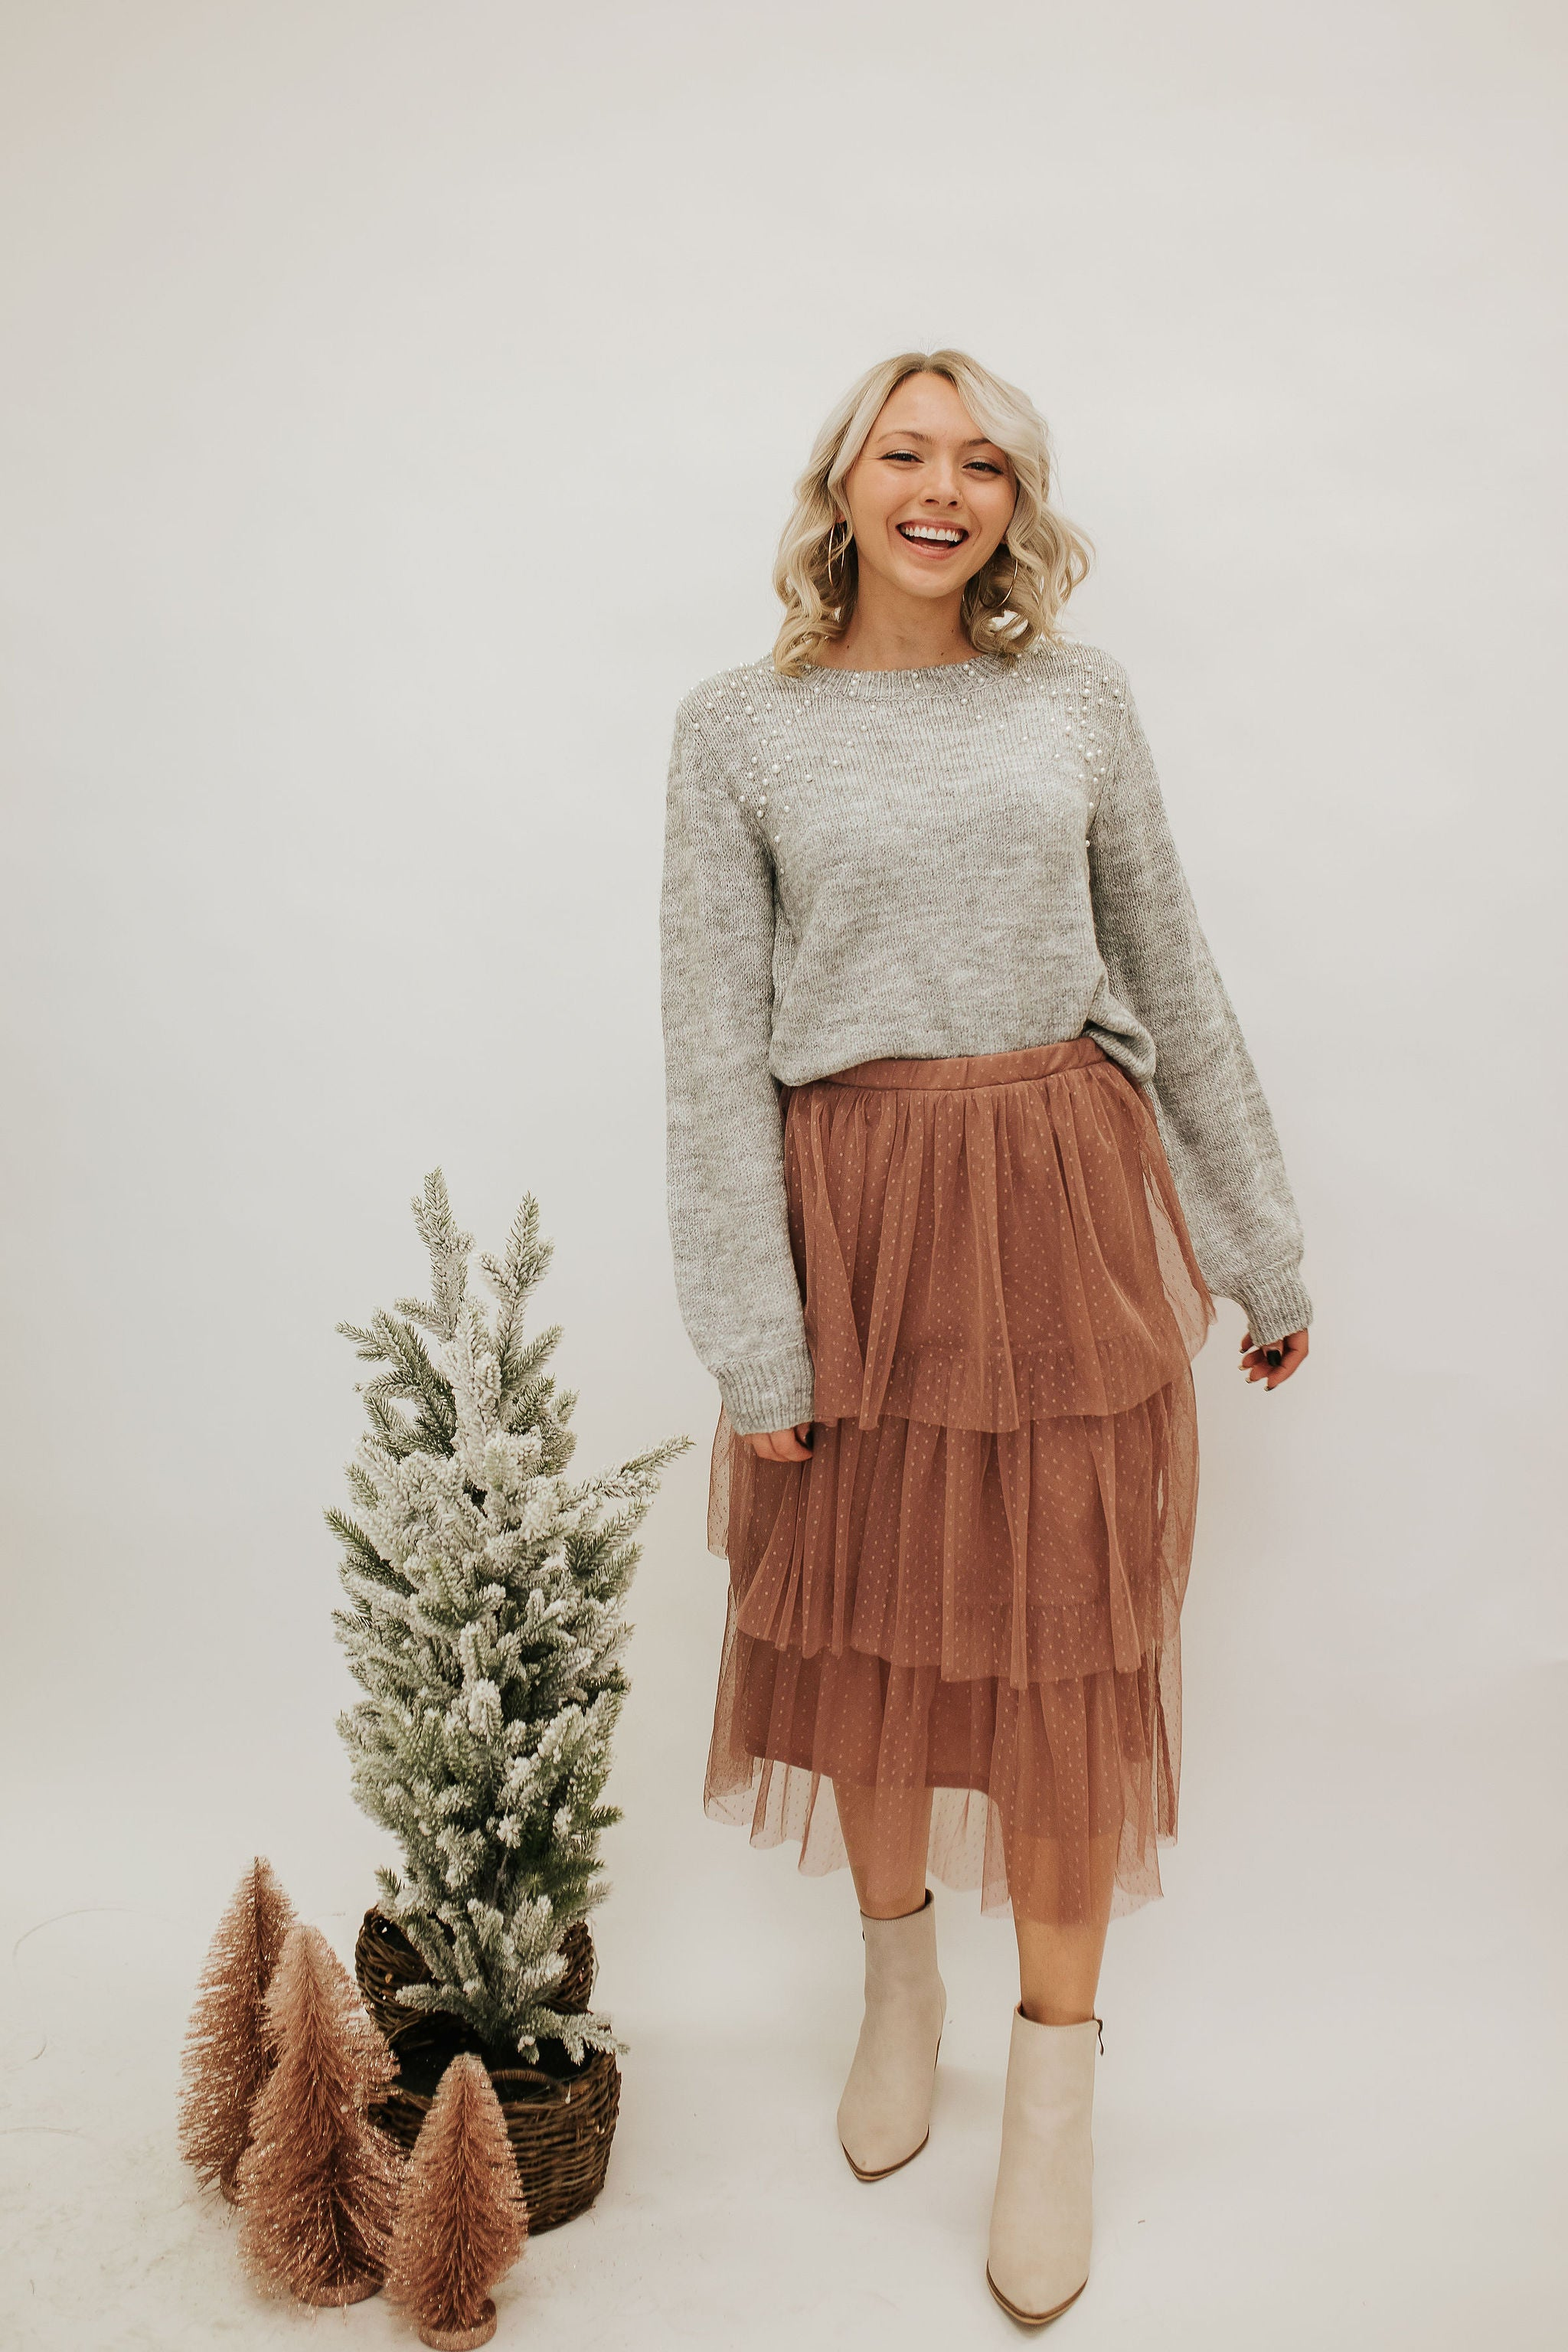 THE MIA TIERED POLKA DOT SKIRT IN MAUVE